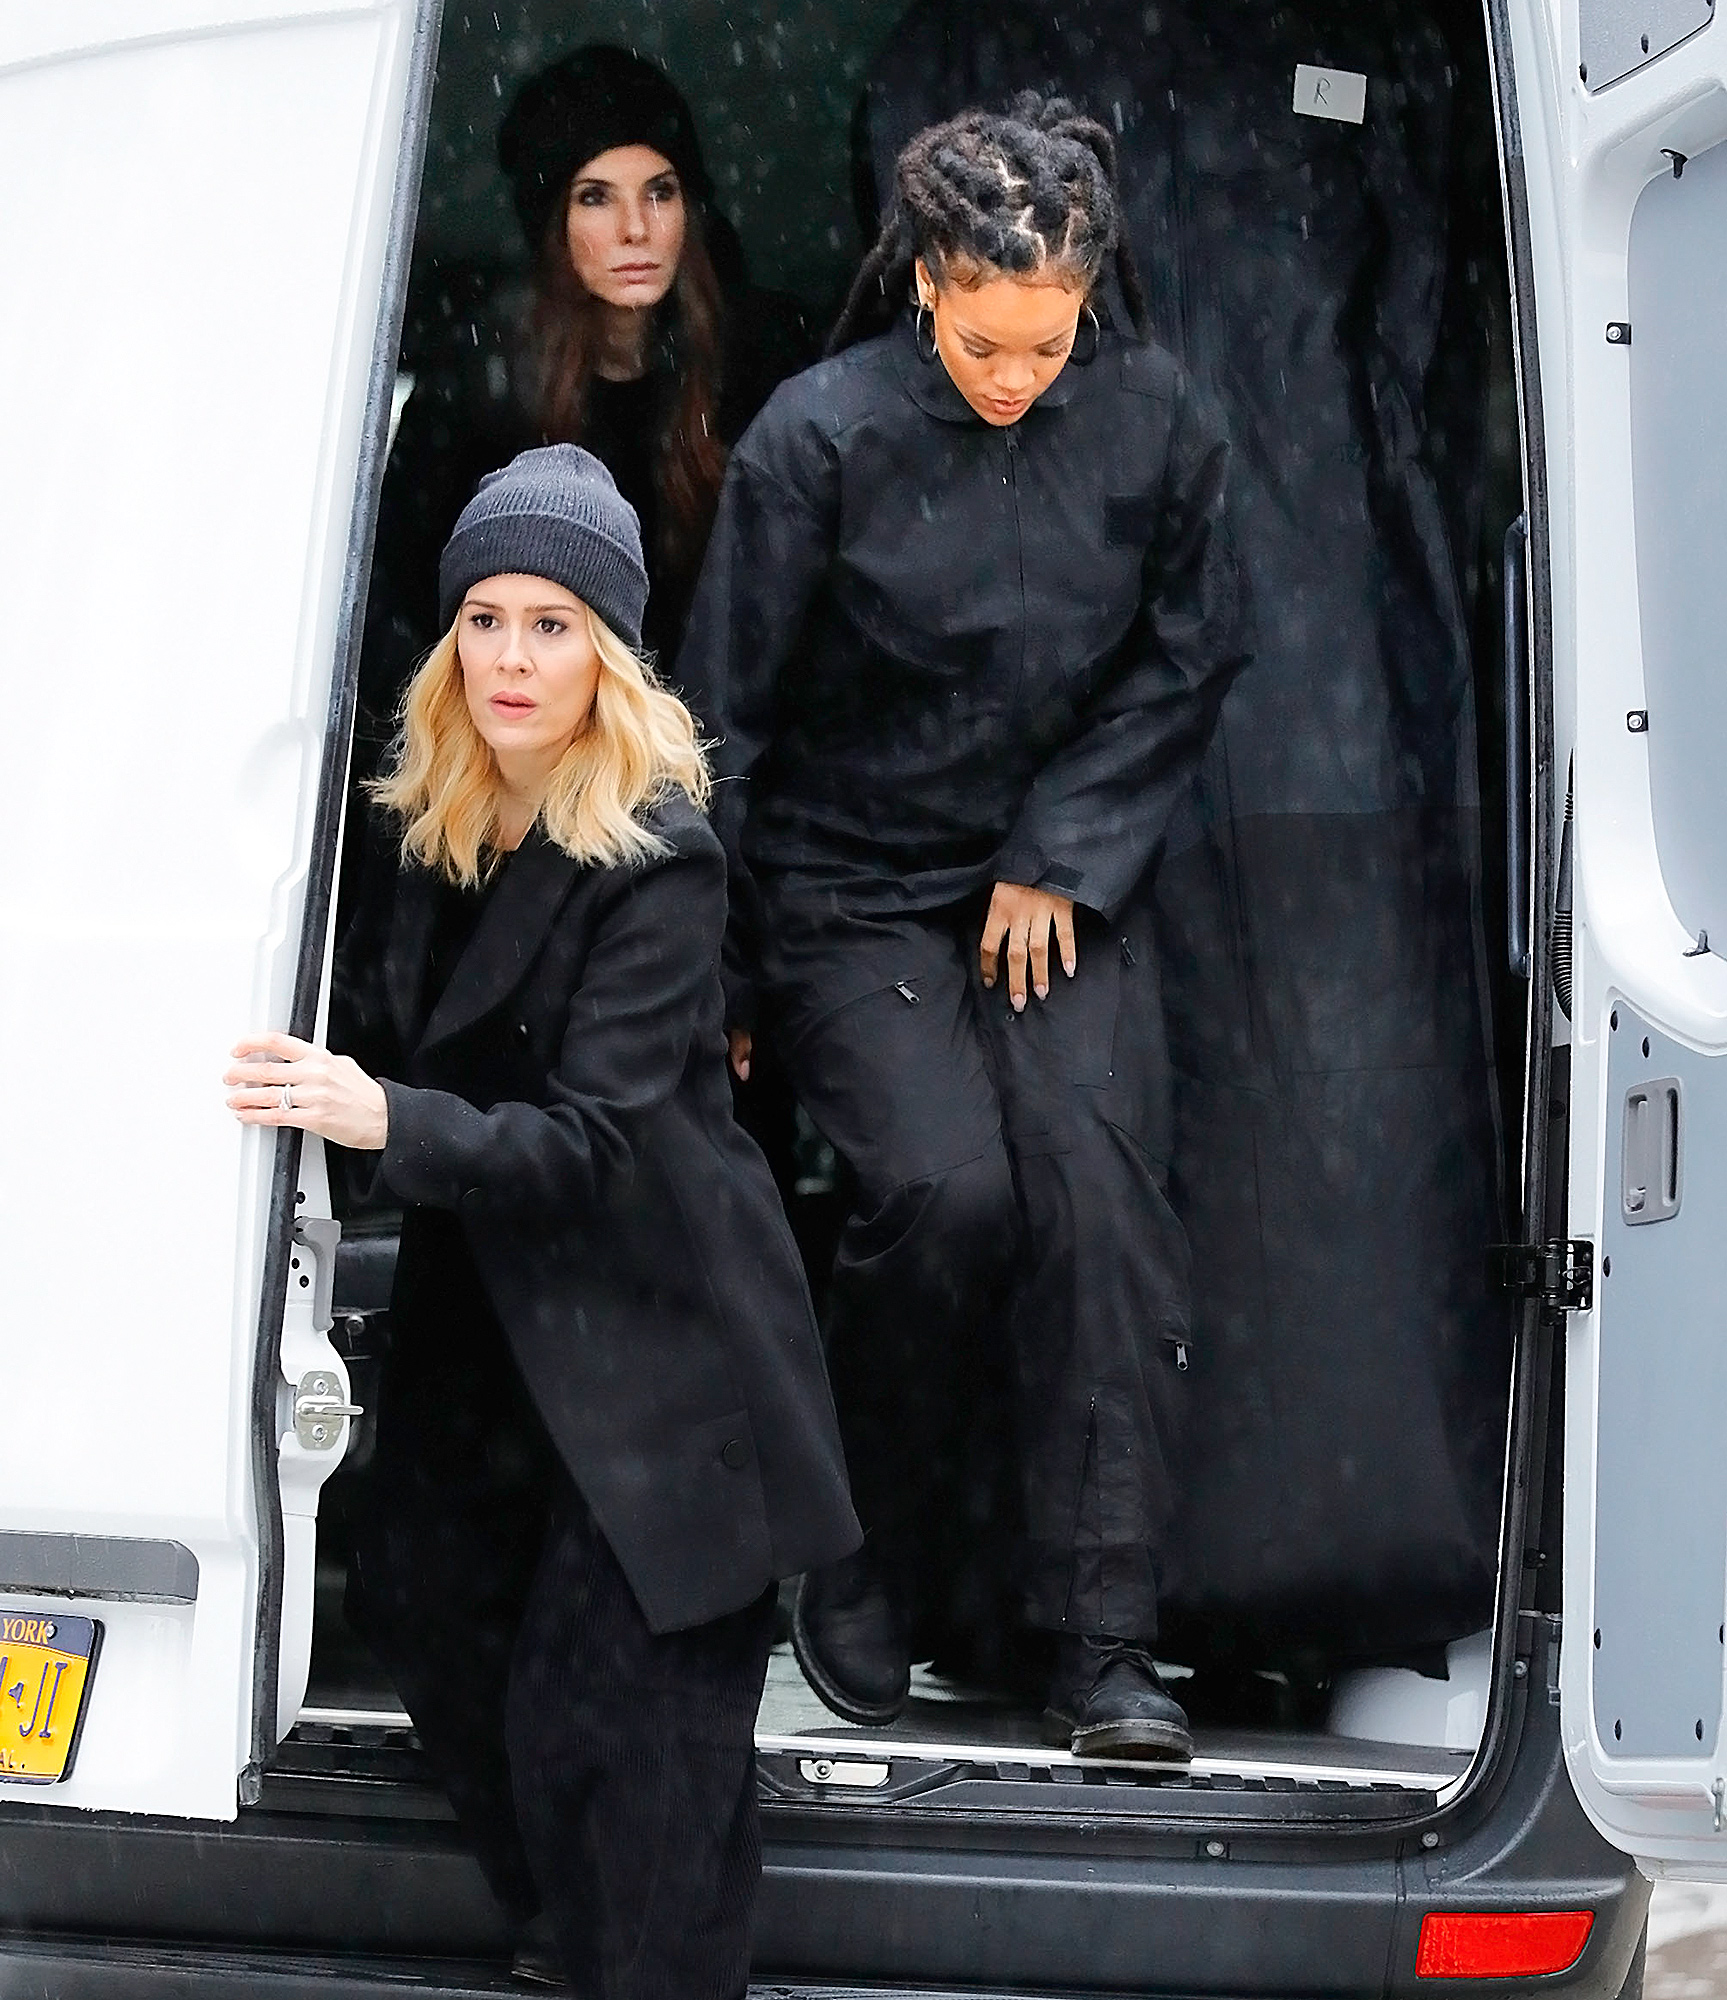 Actors spotted filming on location for 'Ocean's 8' in New York City